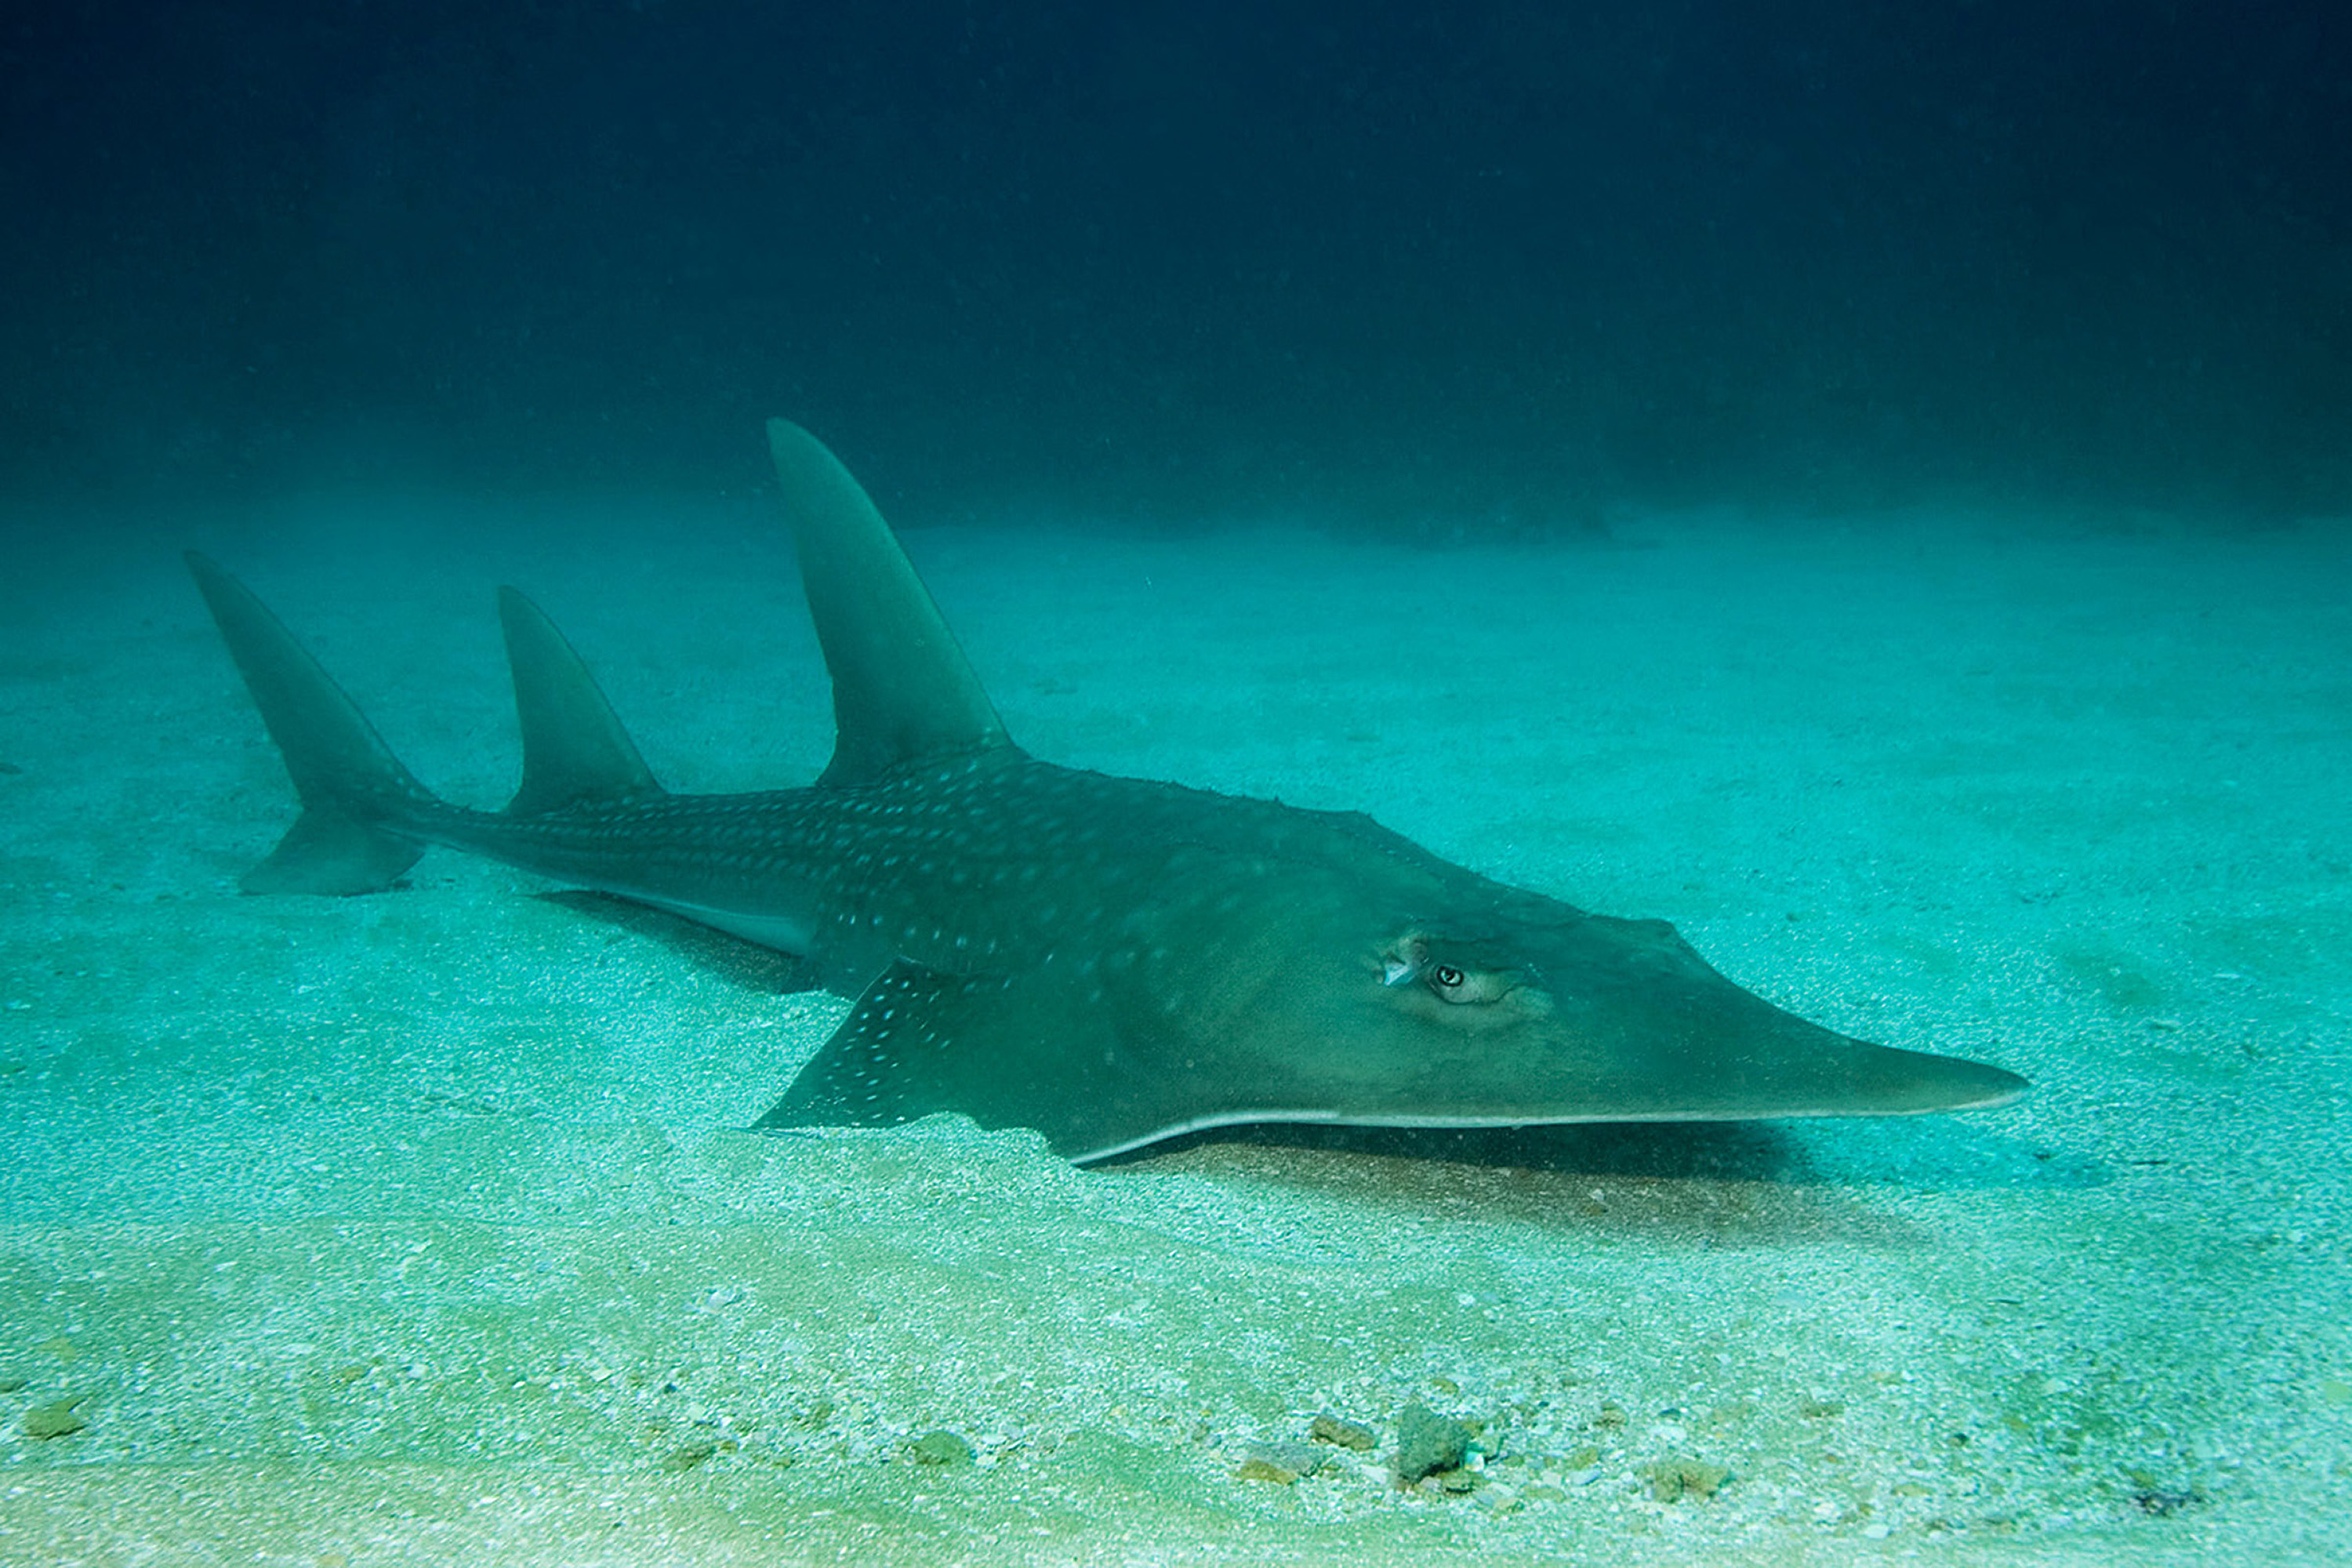 Giant guitarfish are classified as